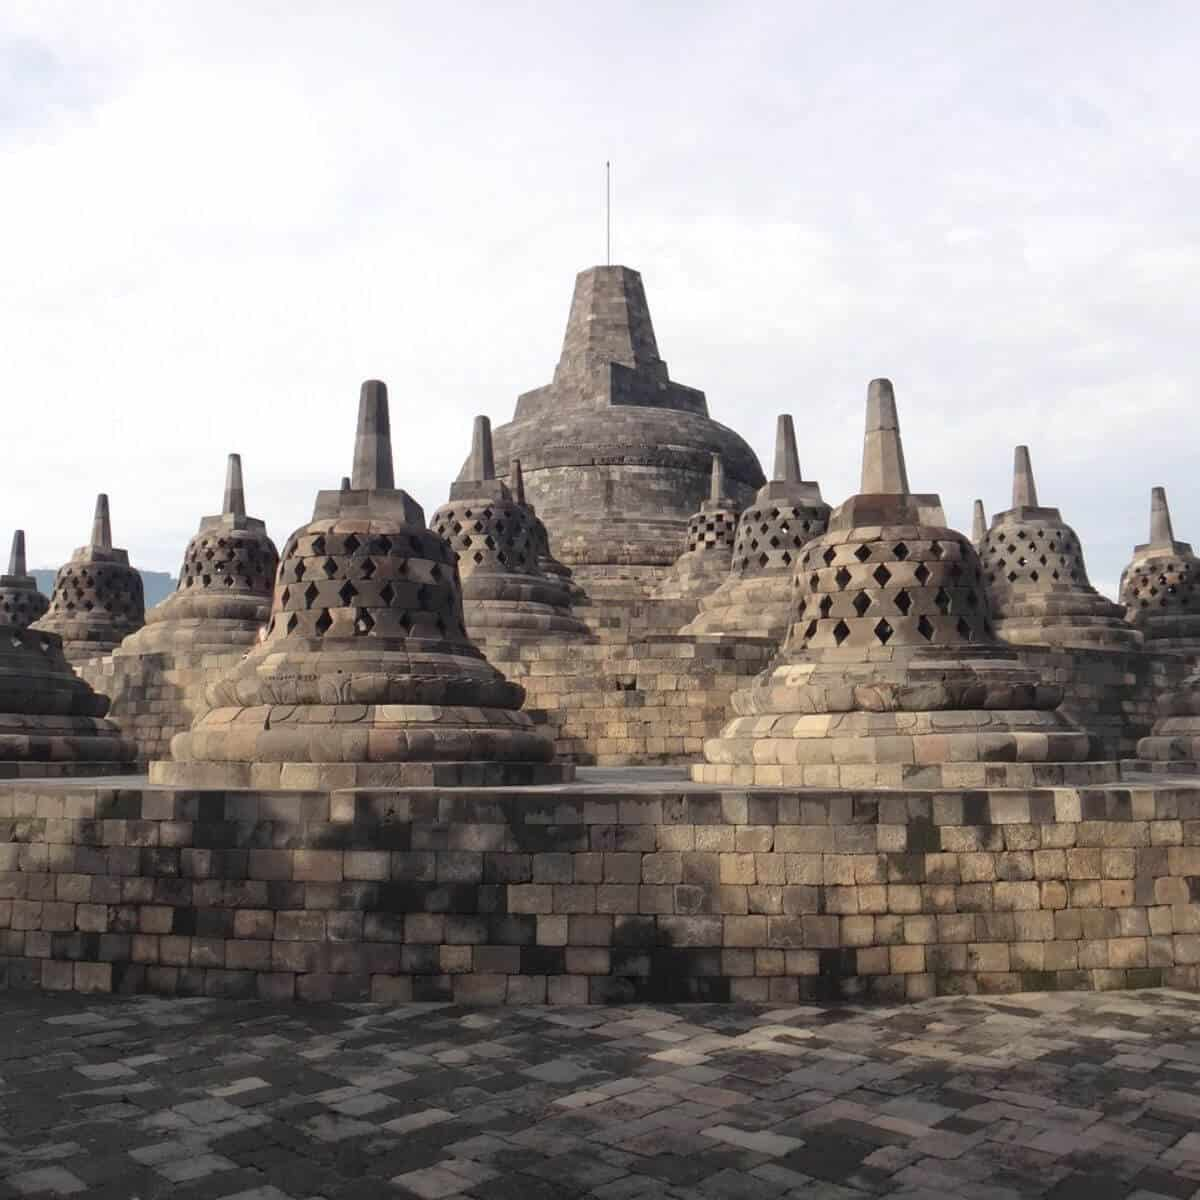 Borobudur Temple in Indonesia on a cloudy day.